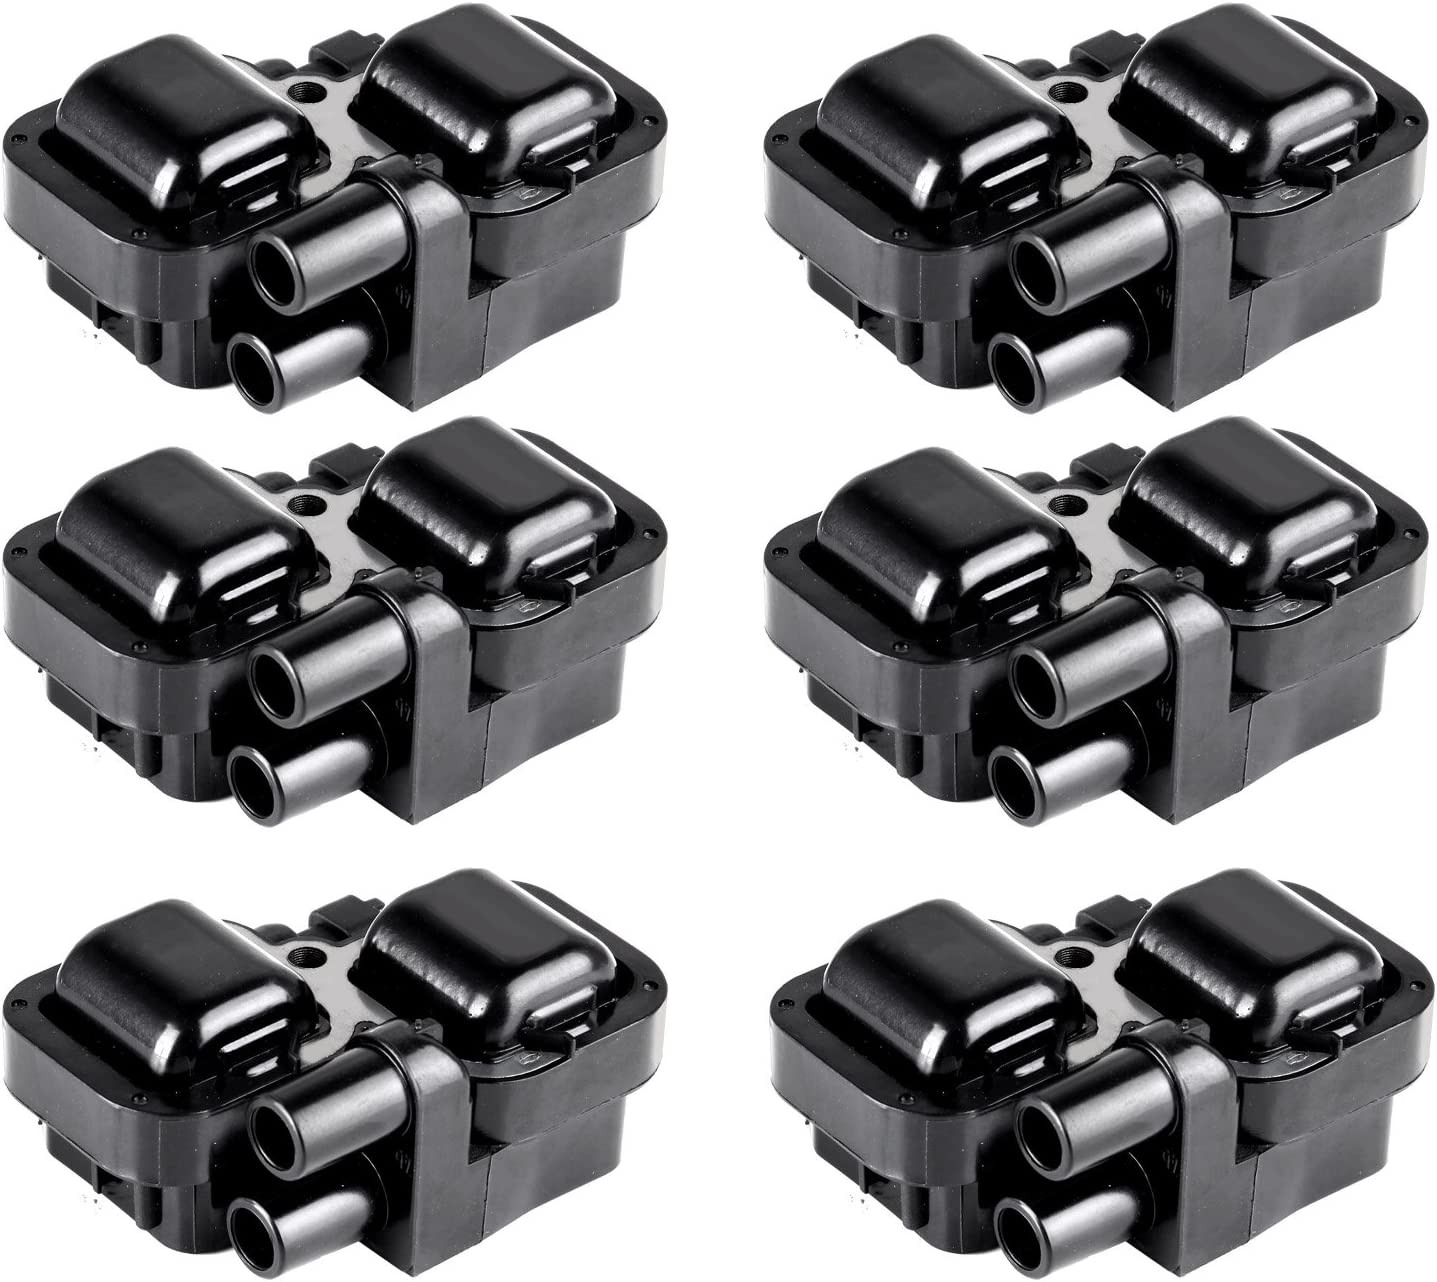 OCPTY Set of 6 Ignition Coils Compatible with OE UF667 Fit for BMW 2003-2017